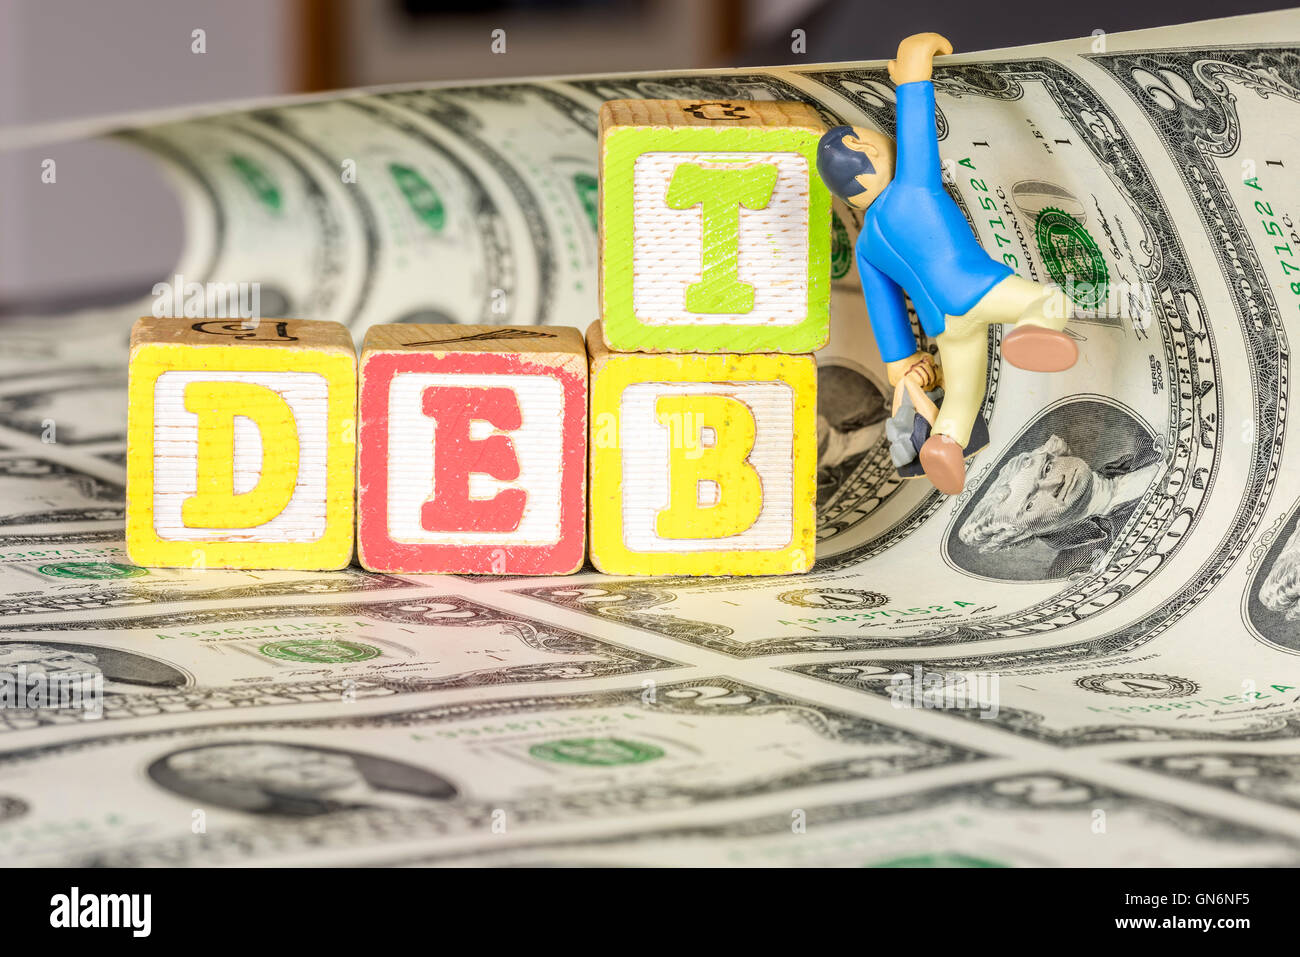 Toy hangs on to money with blocks spelling debt - Stock Image